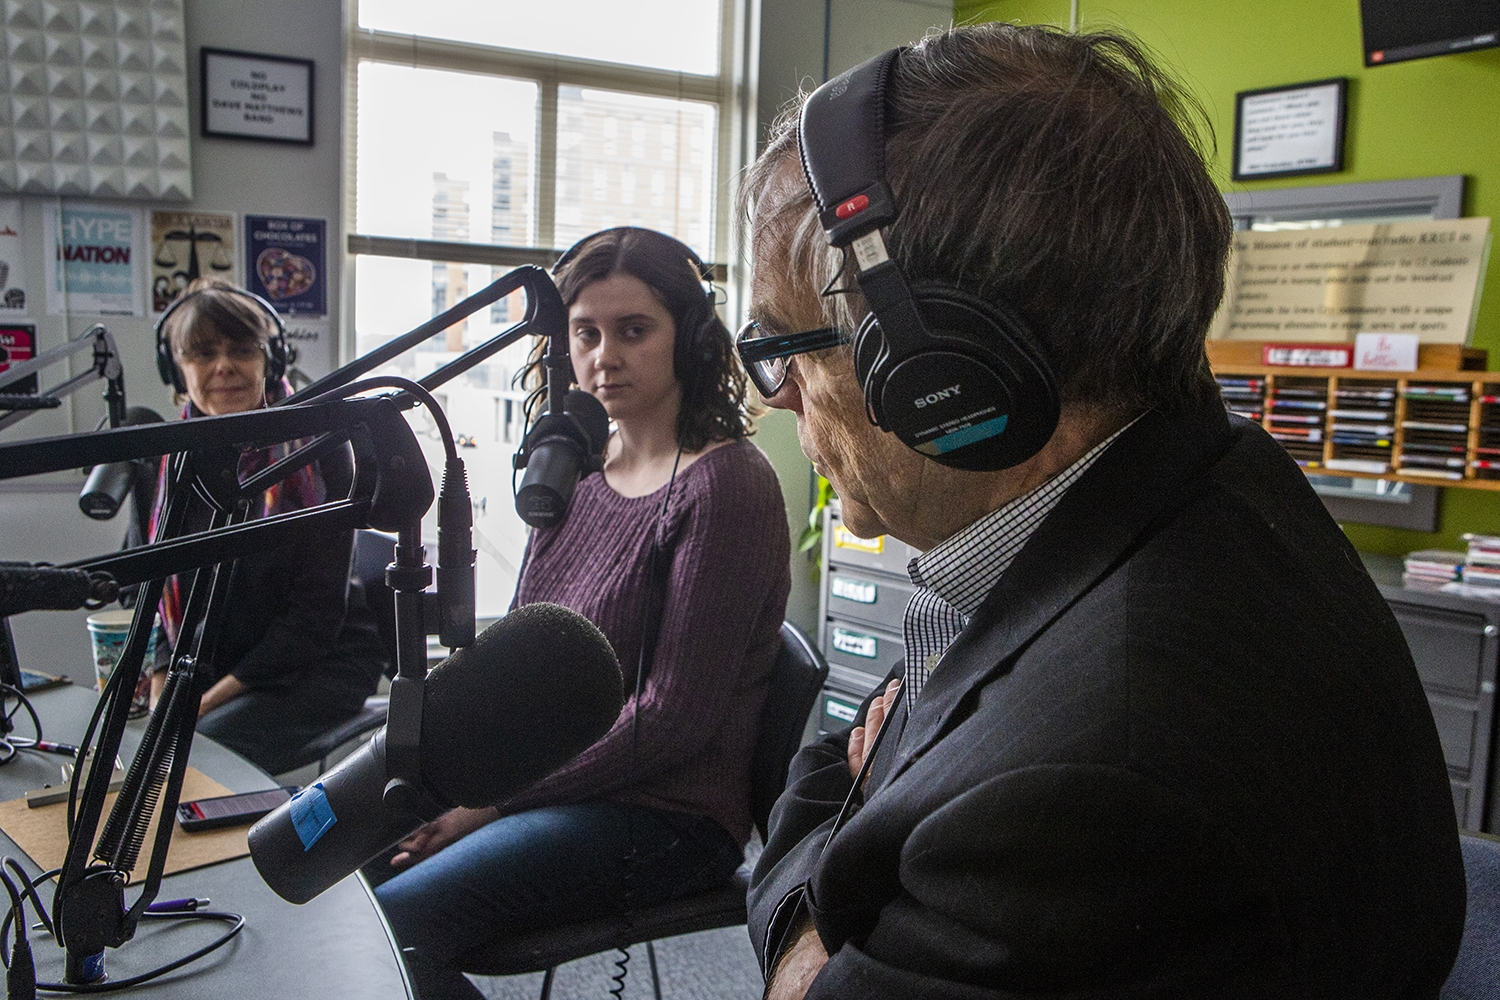 John Tinker answers questions during an interview with the Tinkers at the KRUI studio on Tuesday, February 26, 2019. John, and his sister Mary Beth, wore black arm bands to school in protest of the Vietnam War, leading to the Tinker vs. Des Moines court case in 1969. (Katina Zentz/The Daily Iowan)